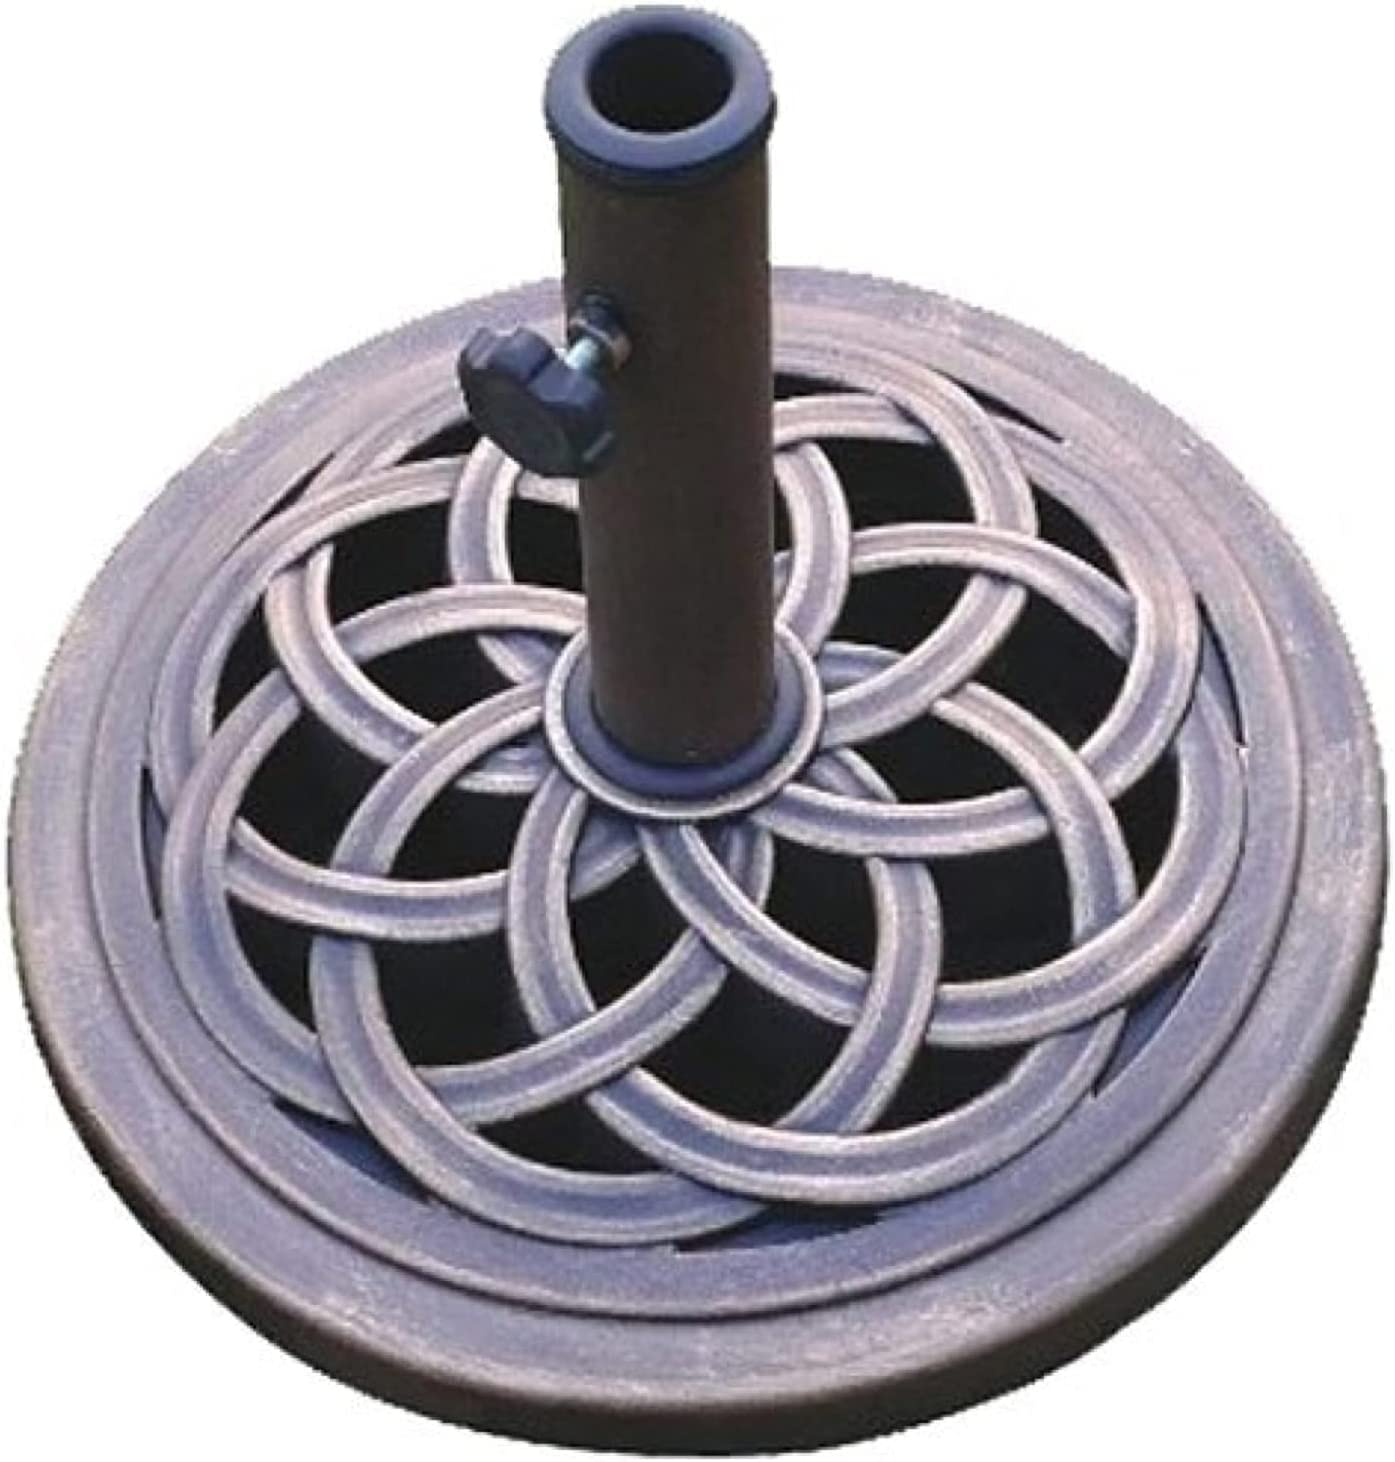 America UBP18181-BR 18-Inch Cast Stone Umbrella Base Selling and selling Made Max 40% OFF from